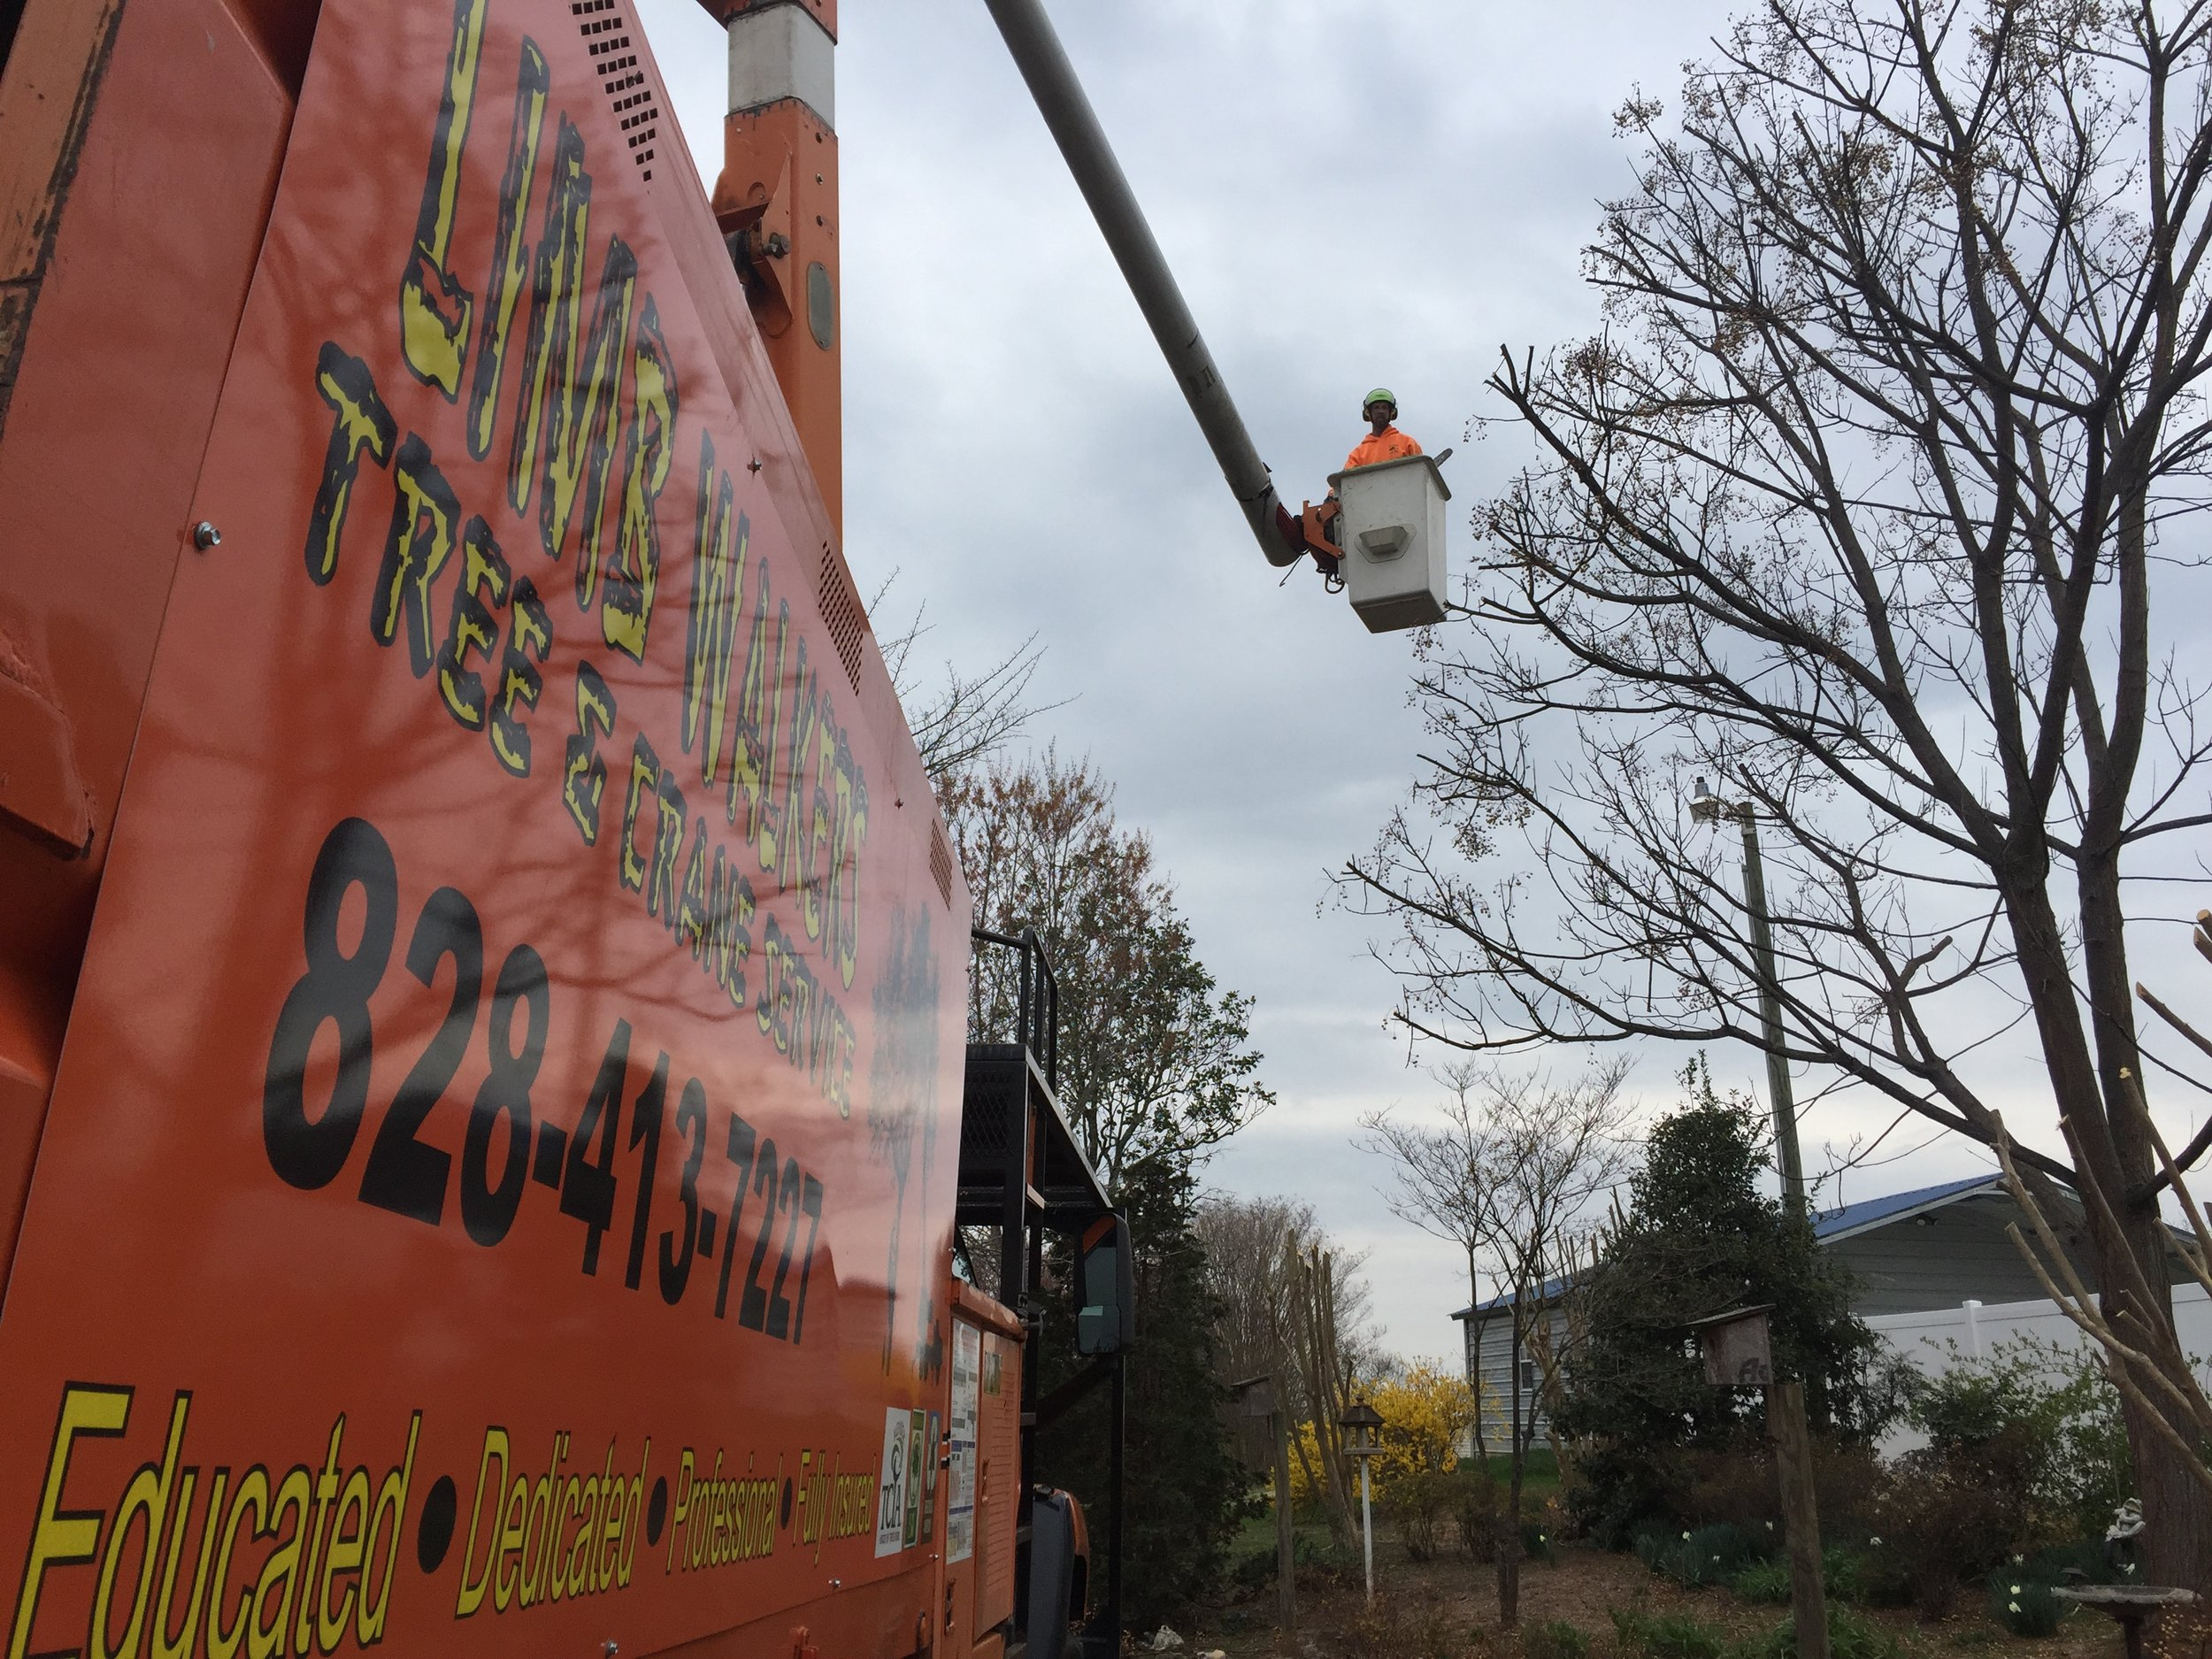 Limbwalkers Tree & Crane Service is based in Morganton, NC and offers a variety of tree services in the surrounding WNC area.